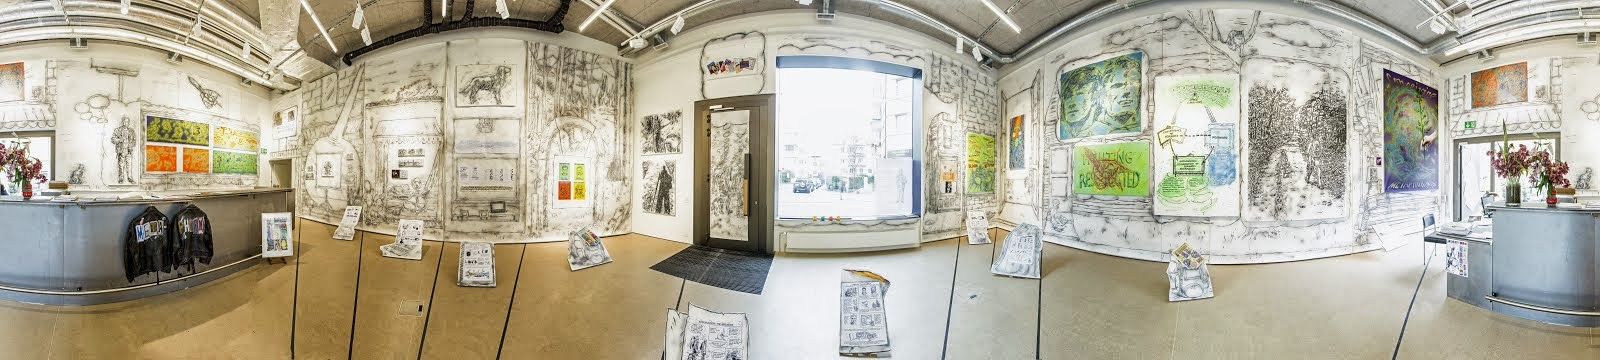 Panorama view of exhibition in Jedlitschka Gallery, Zurich.